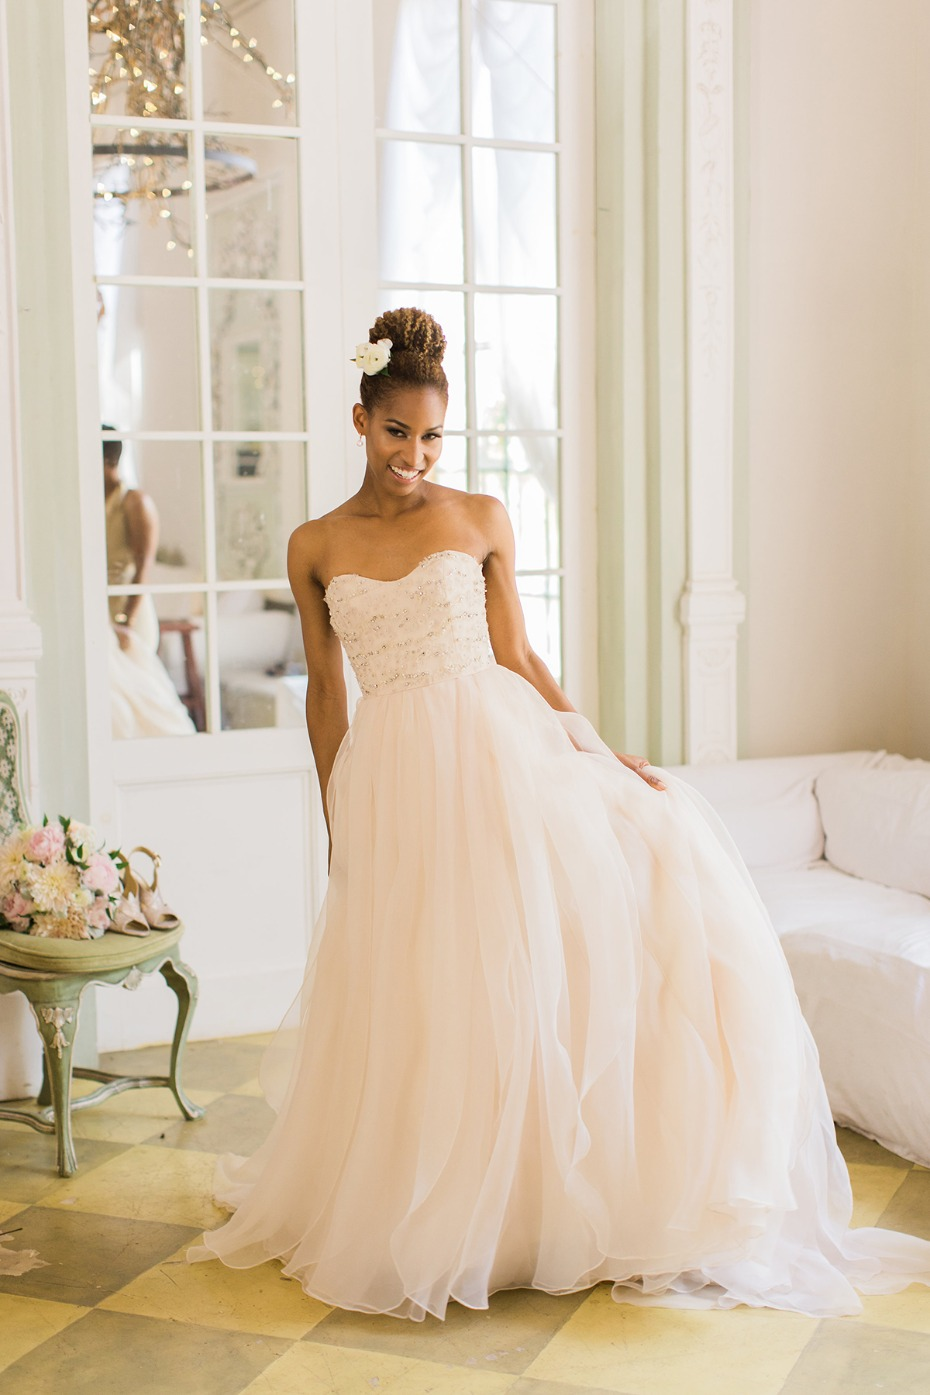 bride in strapless Jim Hjelm wedding dress